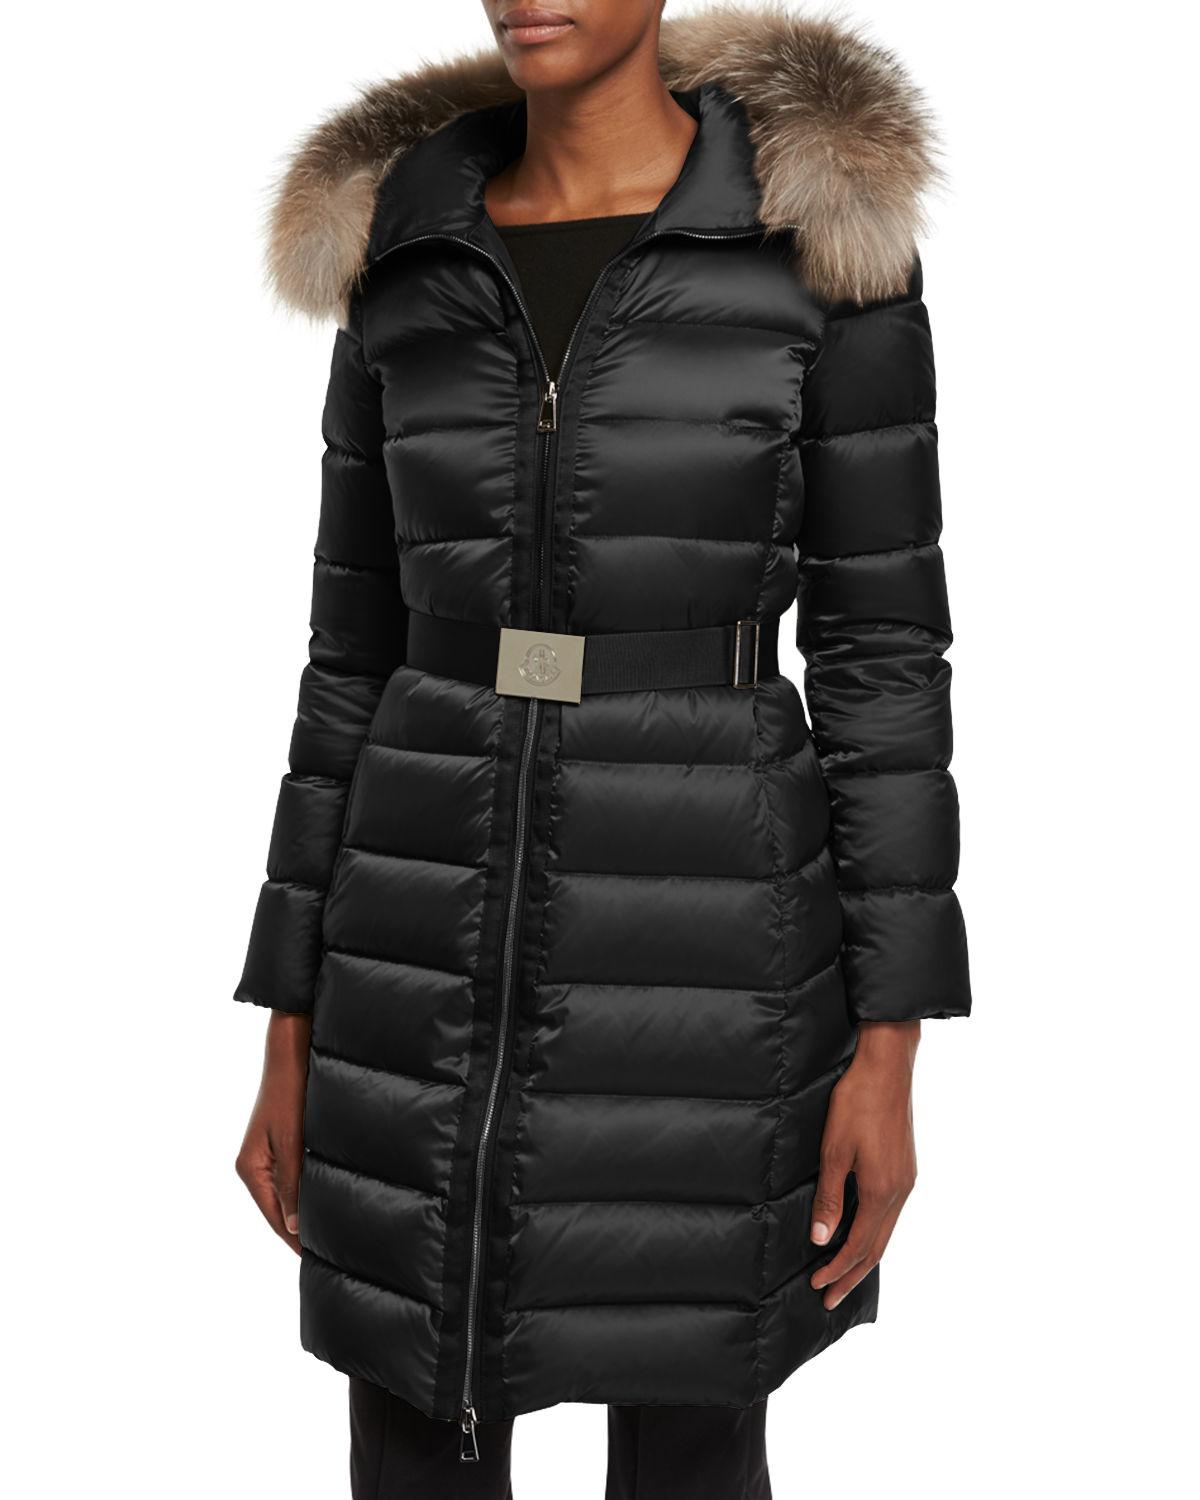 db6f54111 Lyst - Moncler Tinuviel Shiny Quilted Puffer Coat W fur Hood in Black